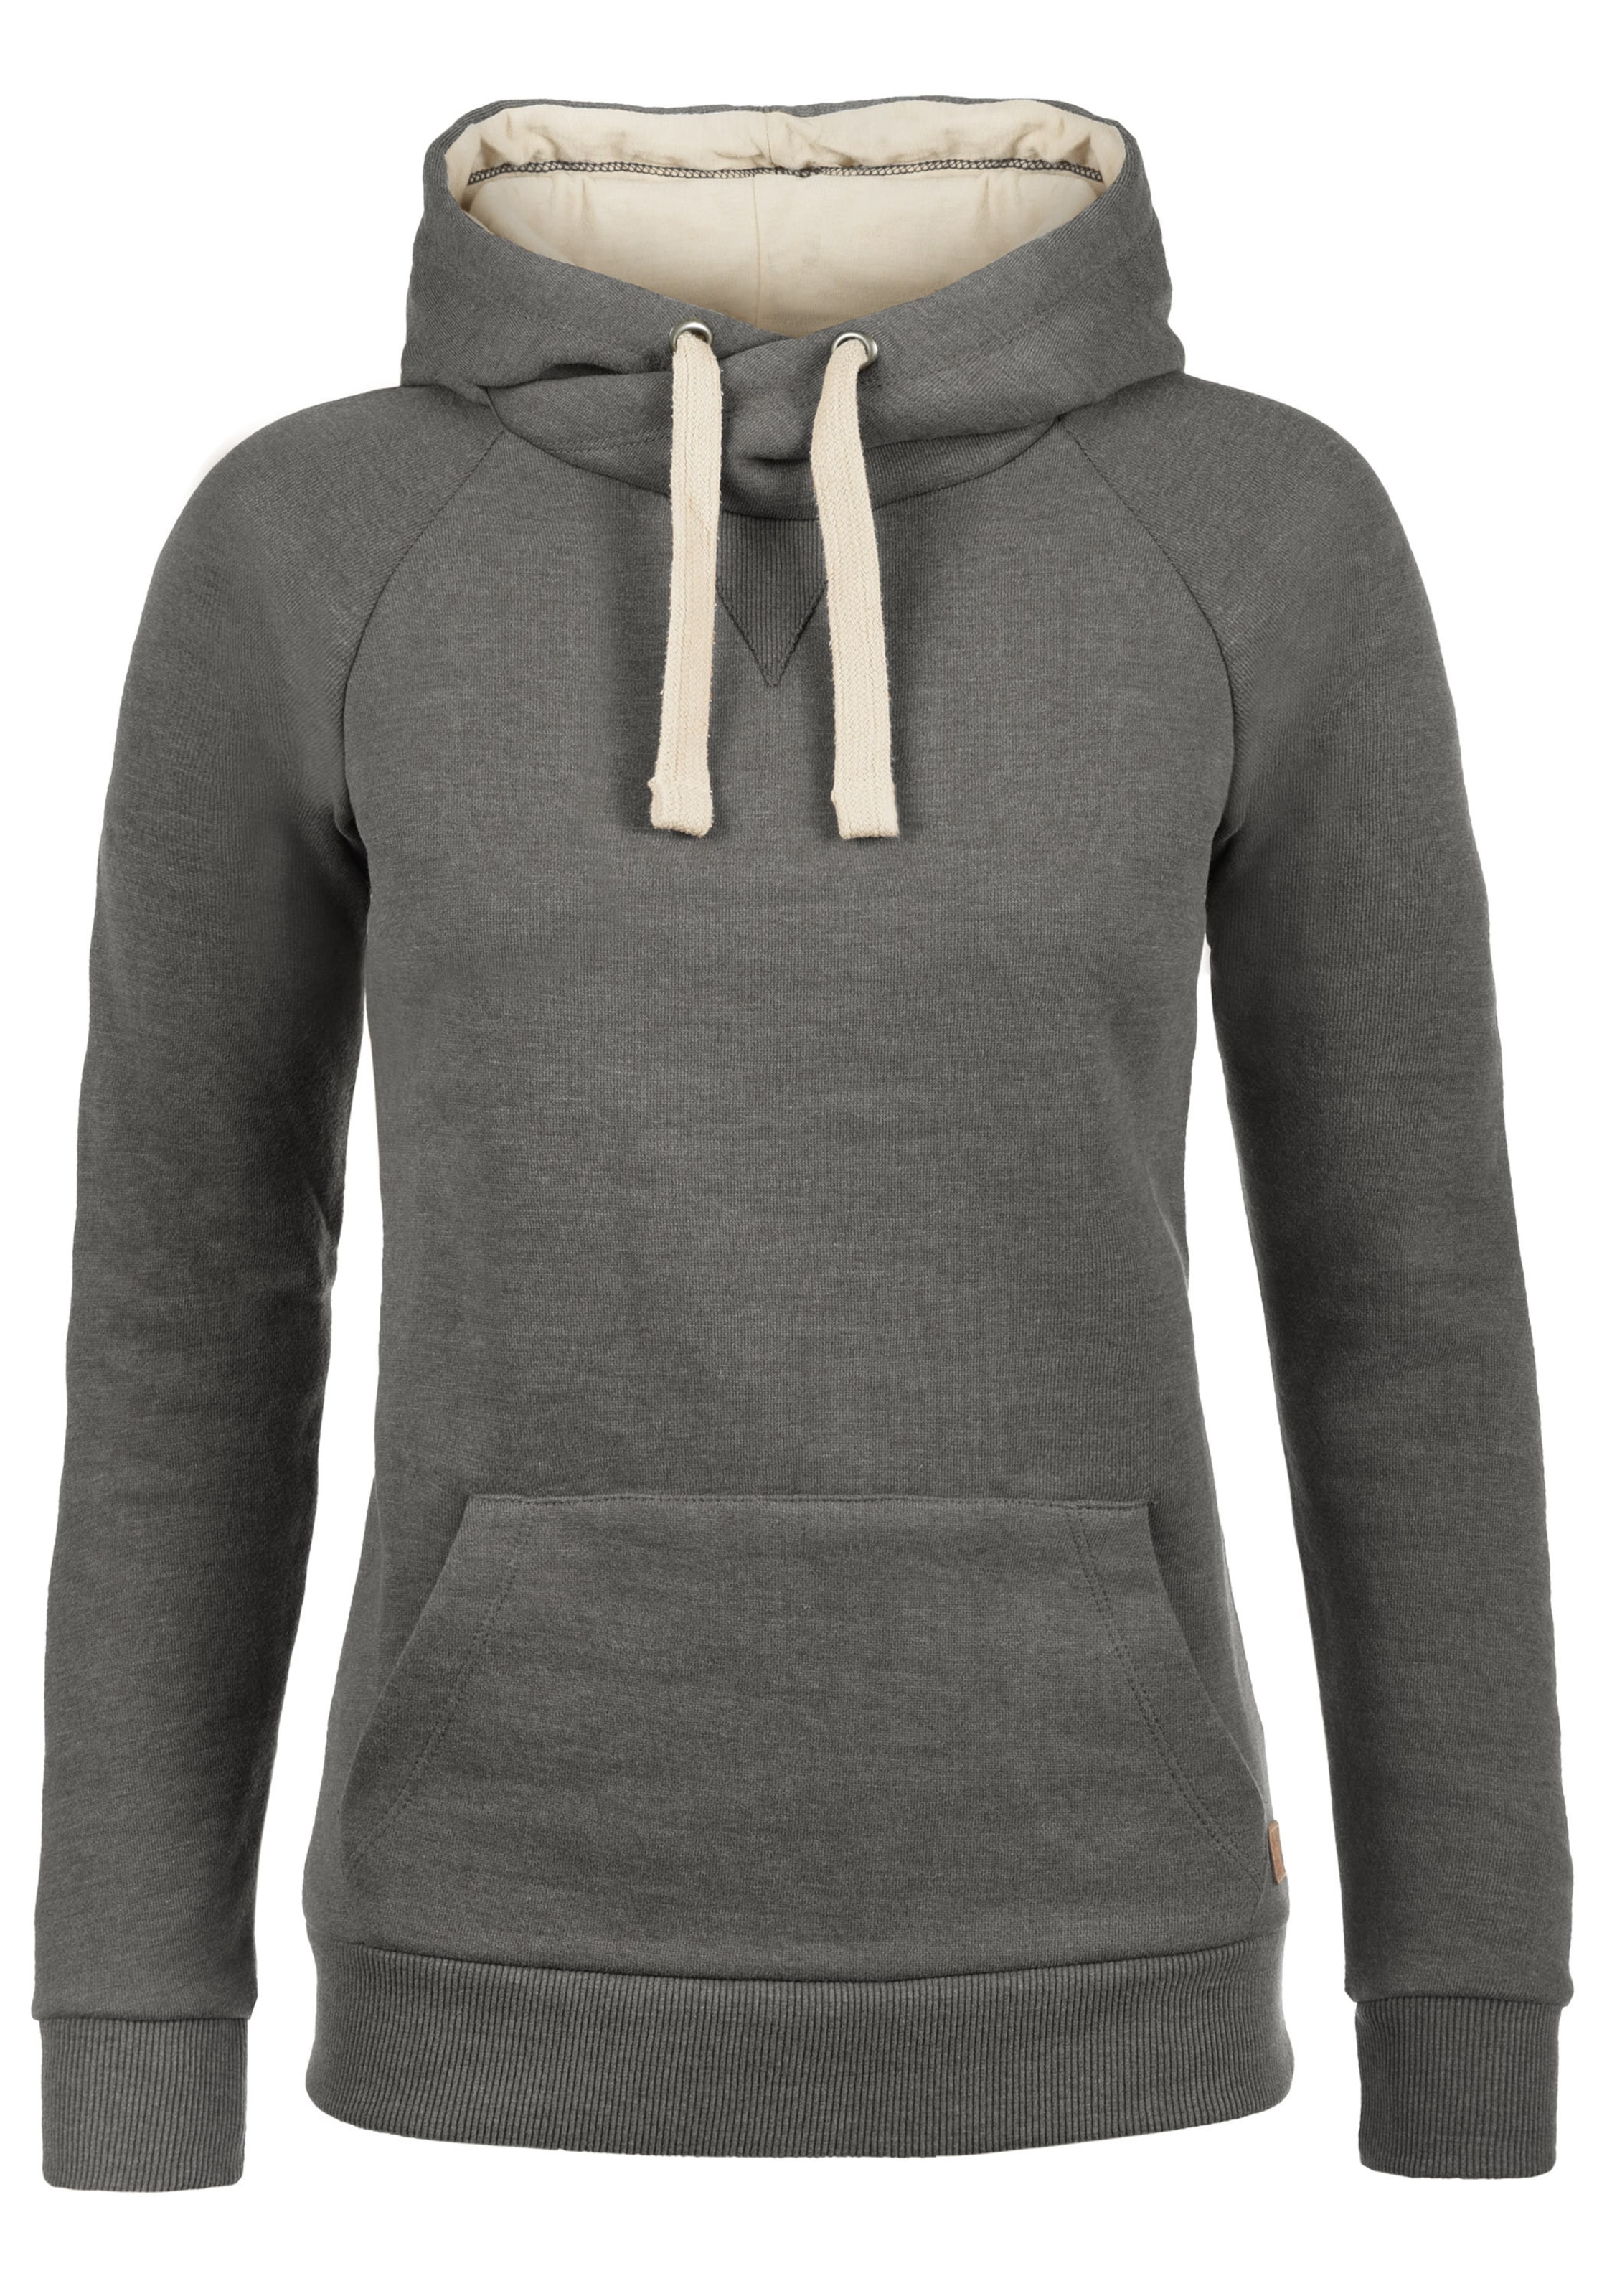 'julia' Grau Hoodie She Blend In OwPmN0yv8n